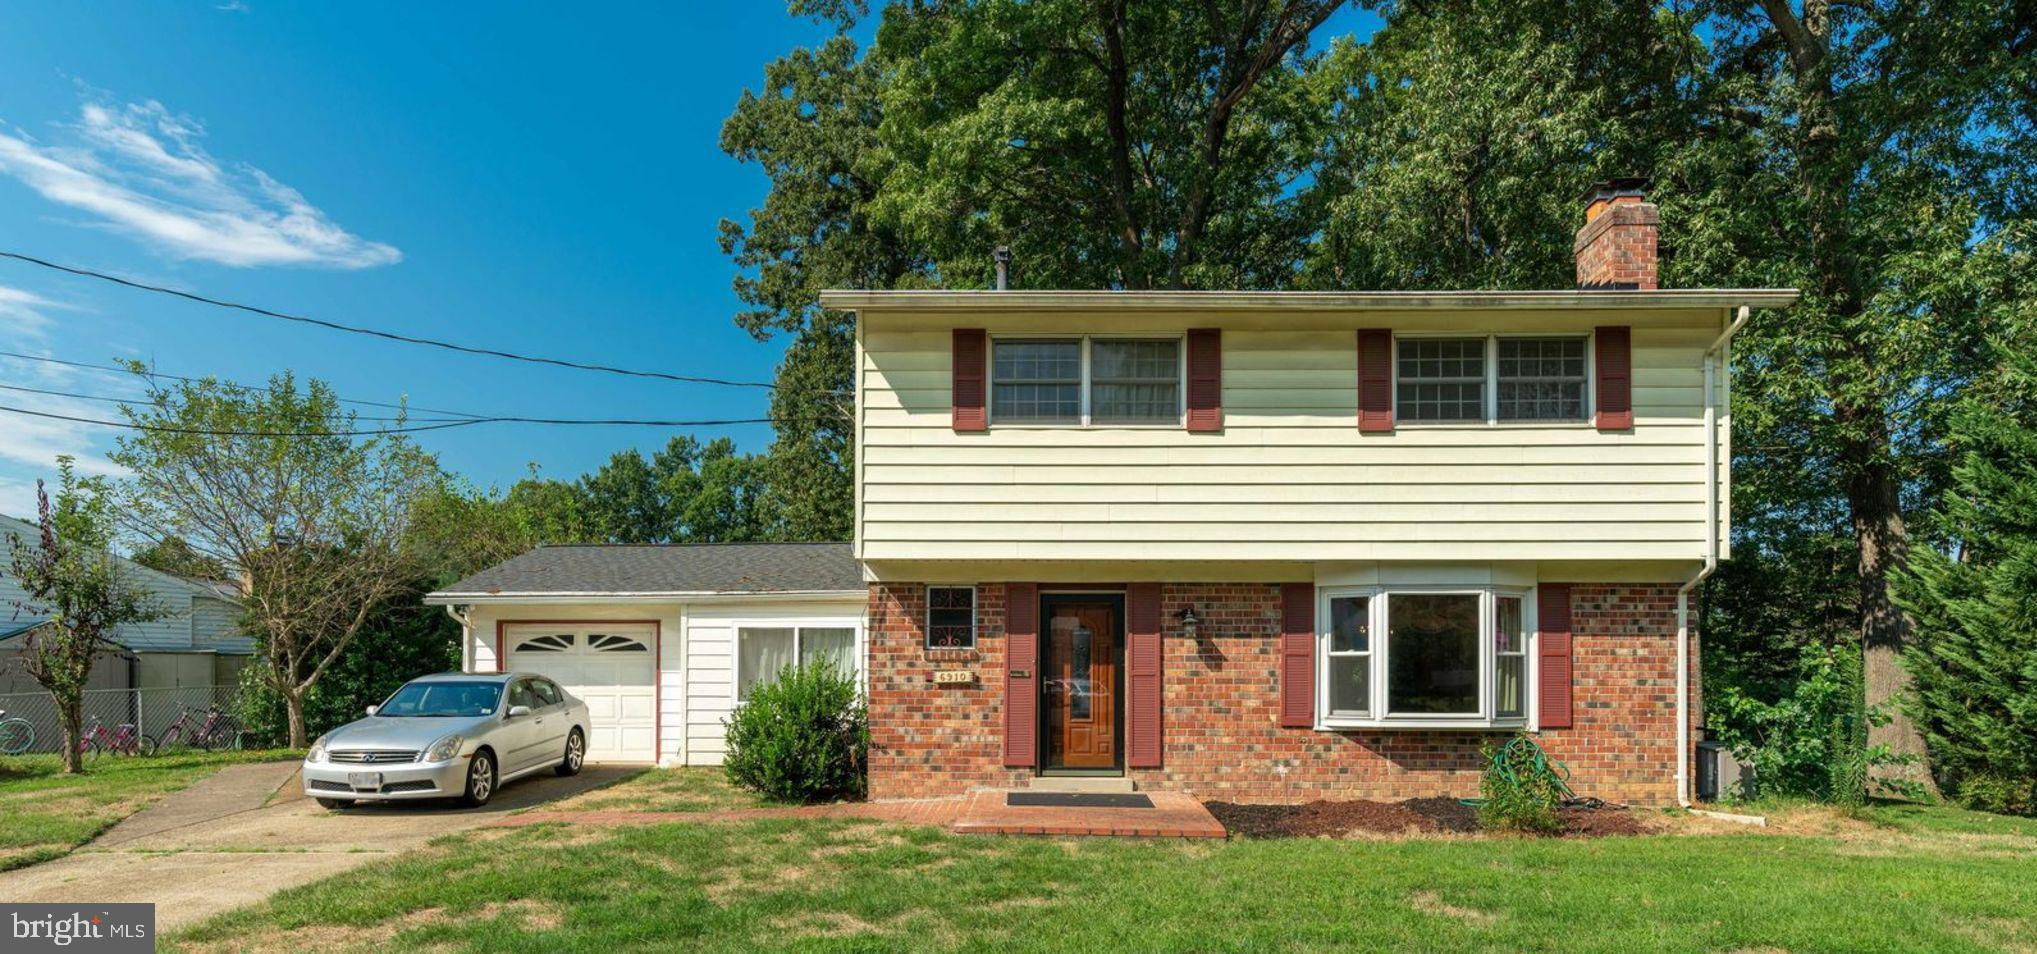 Motivated Seller! MASSIVE PRICE DROP! Beautiful 4 Bedroom, 2.5 Bath is ready for you to put your personal stamp on it!  Sunny and bright main level, with gorgeous upgraded kitchen.  Living Room has an inviting fireplace.  Sunroom/Family Room is the perfect place to unwind. Hardwoods under carpet!  You'll fall in love the large, flat back yard with patio.  Sold AS IS and ready for you to add your special touches to the unfinished basement!! Now is a great time to make your dreams of owning a home come true!